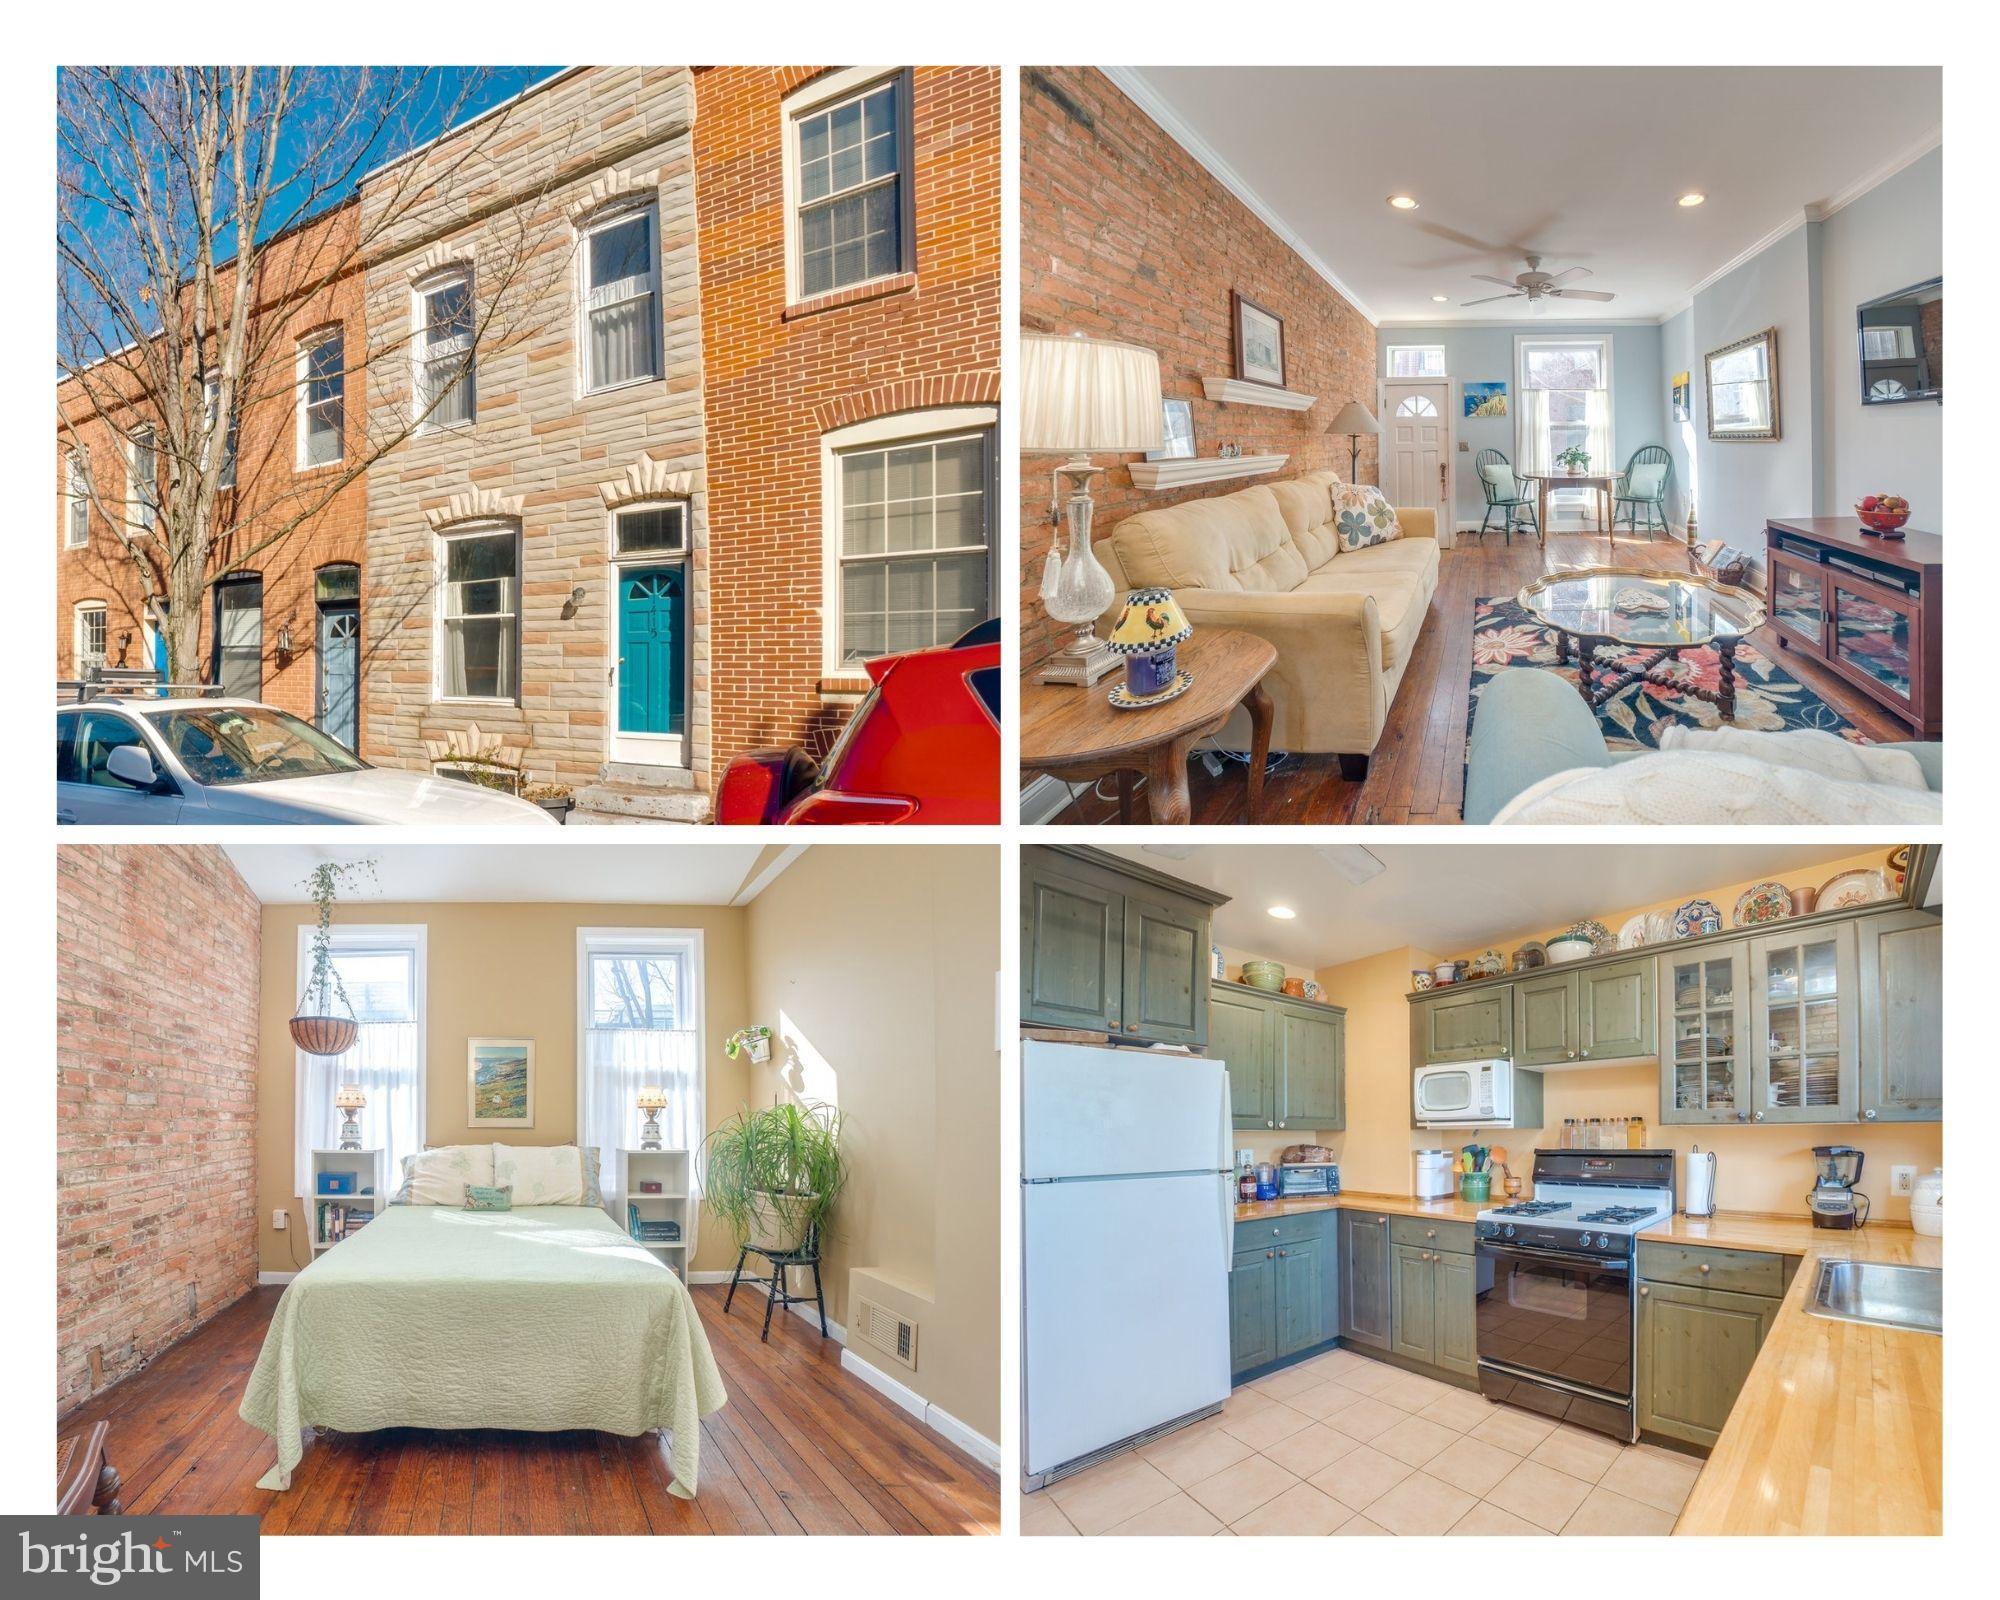 1415 BELT STREET, BALTIMORE, Maryland 21230, 2 Bedrooms Bedrooms, ,1 BathroomBathrooms,Townhouse,For Sale,1415 BELT STREET,MDBA548632